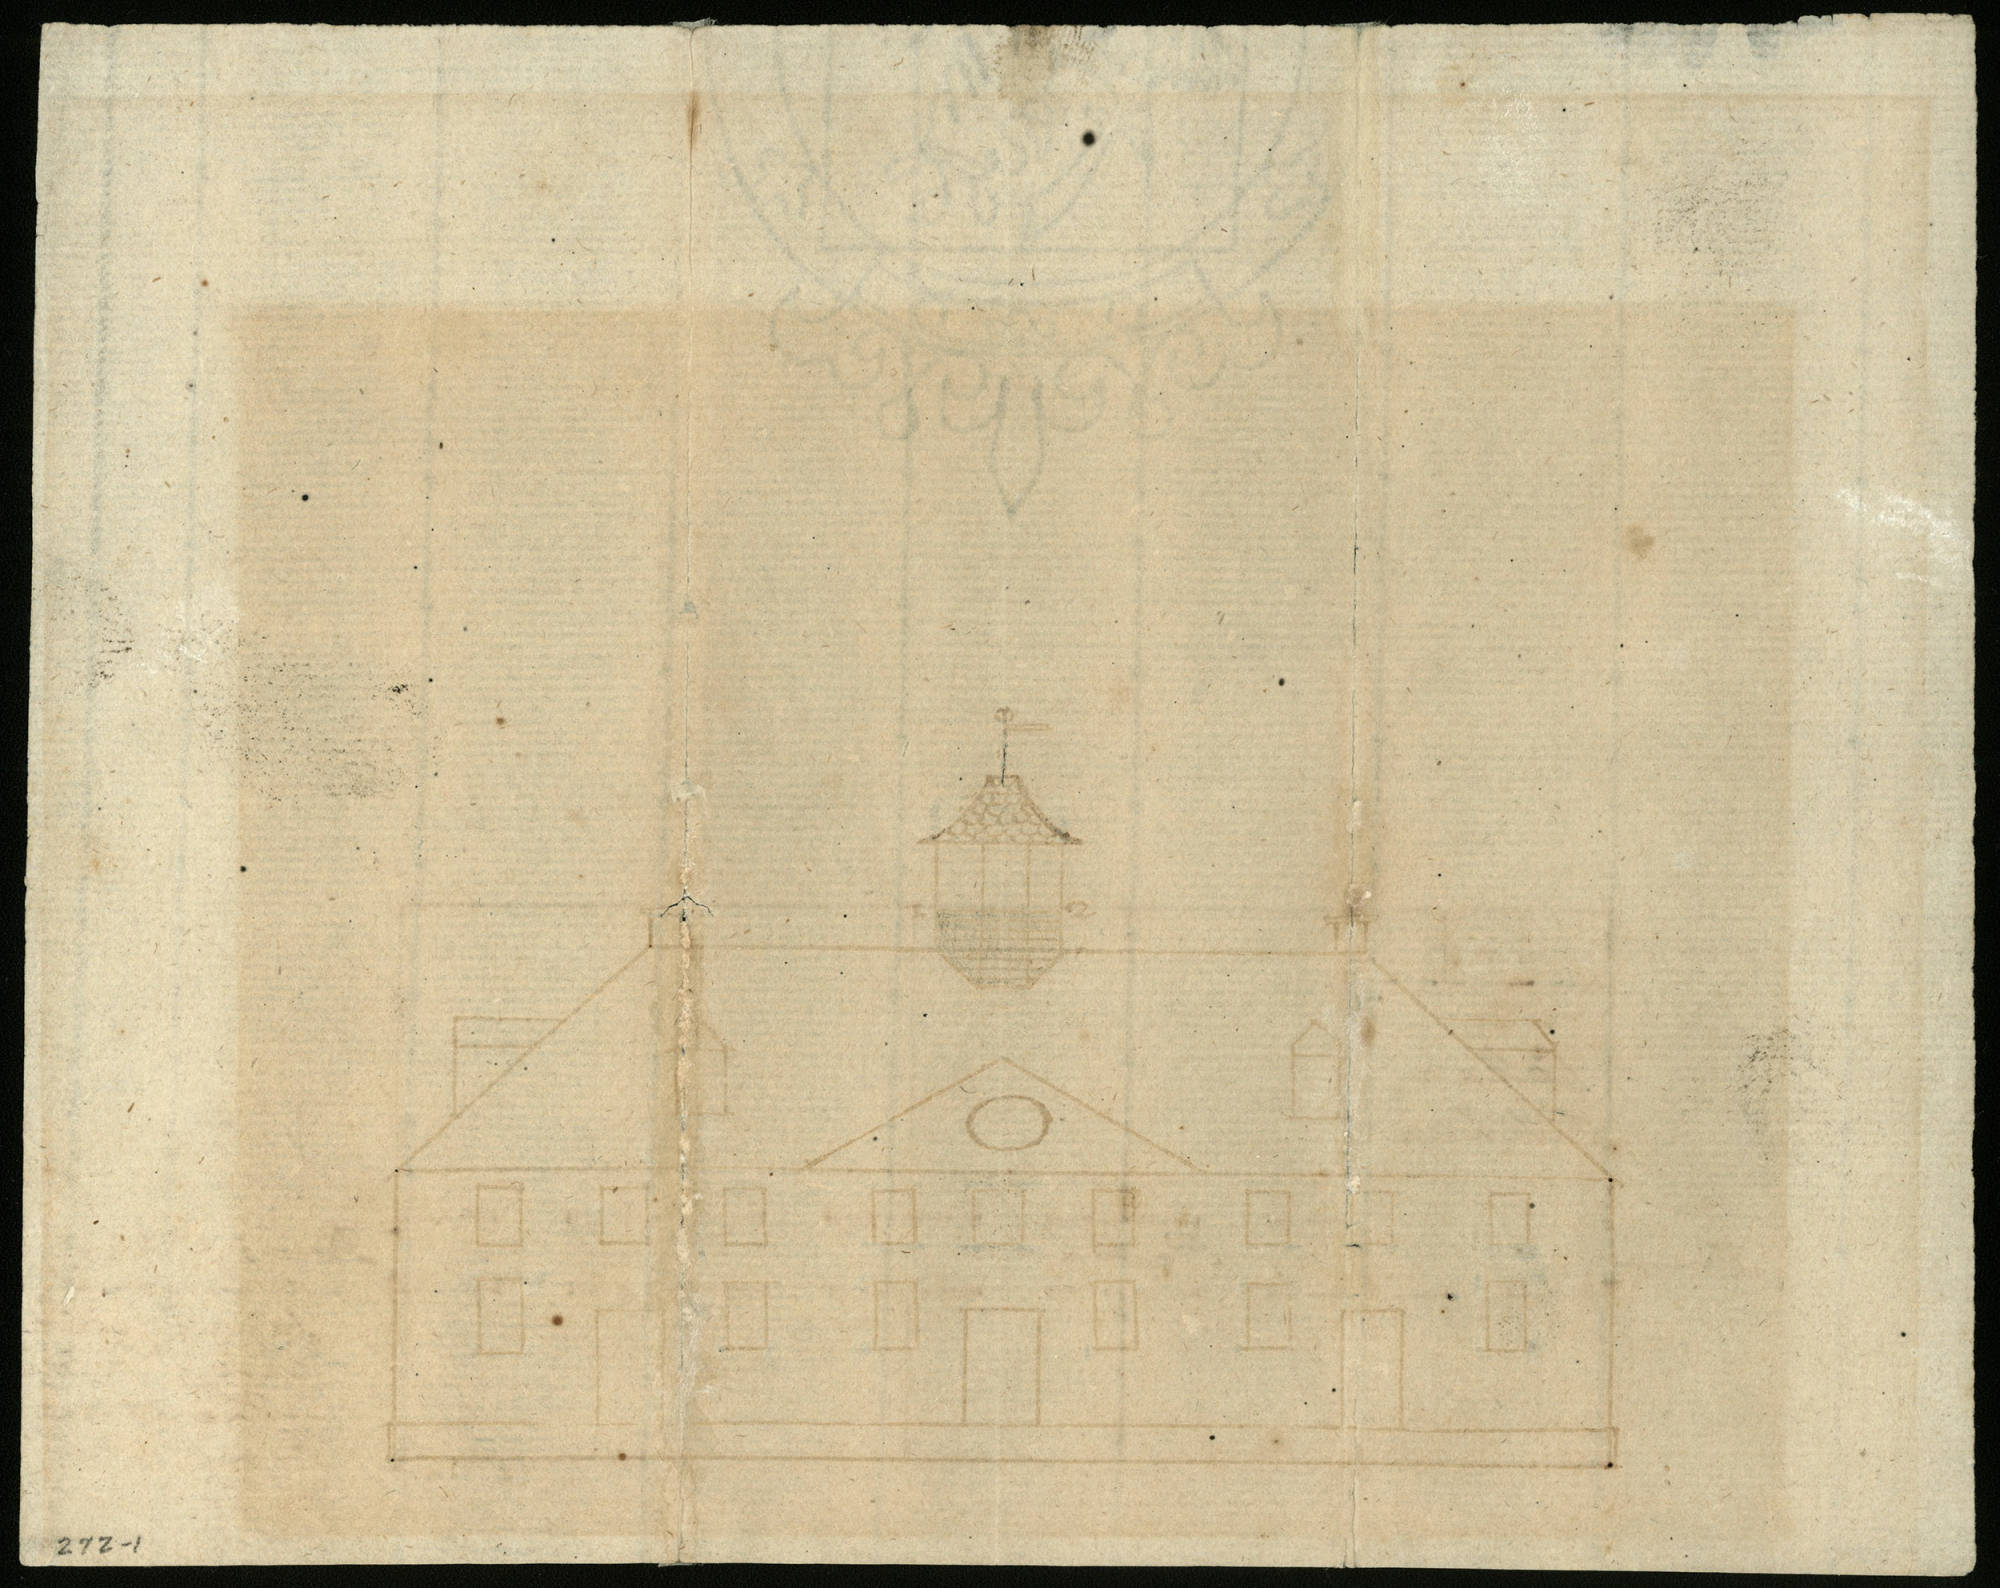 George Washington's West Elevation Plan of Mount Vernon, c. 1774, MVLA.